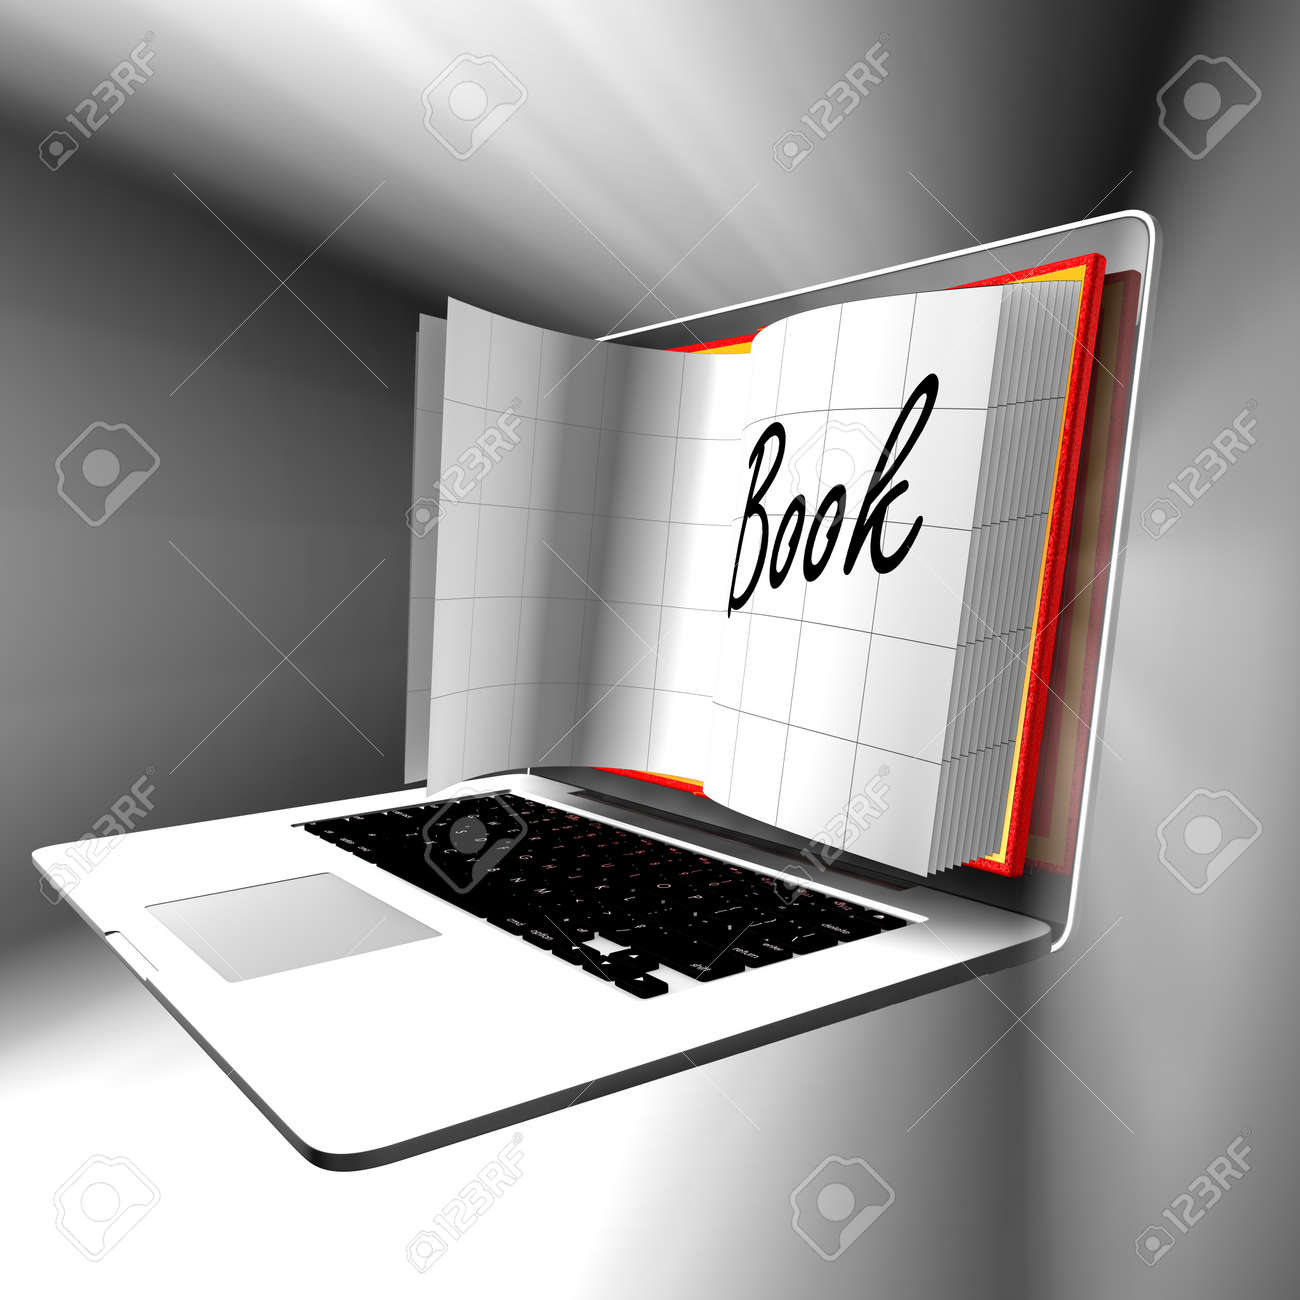 E-Learning:Computer or internet transfer of skills and knowledge - 10180278